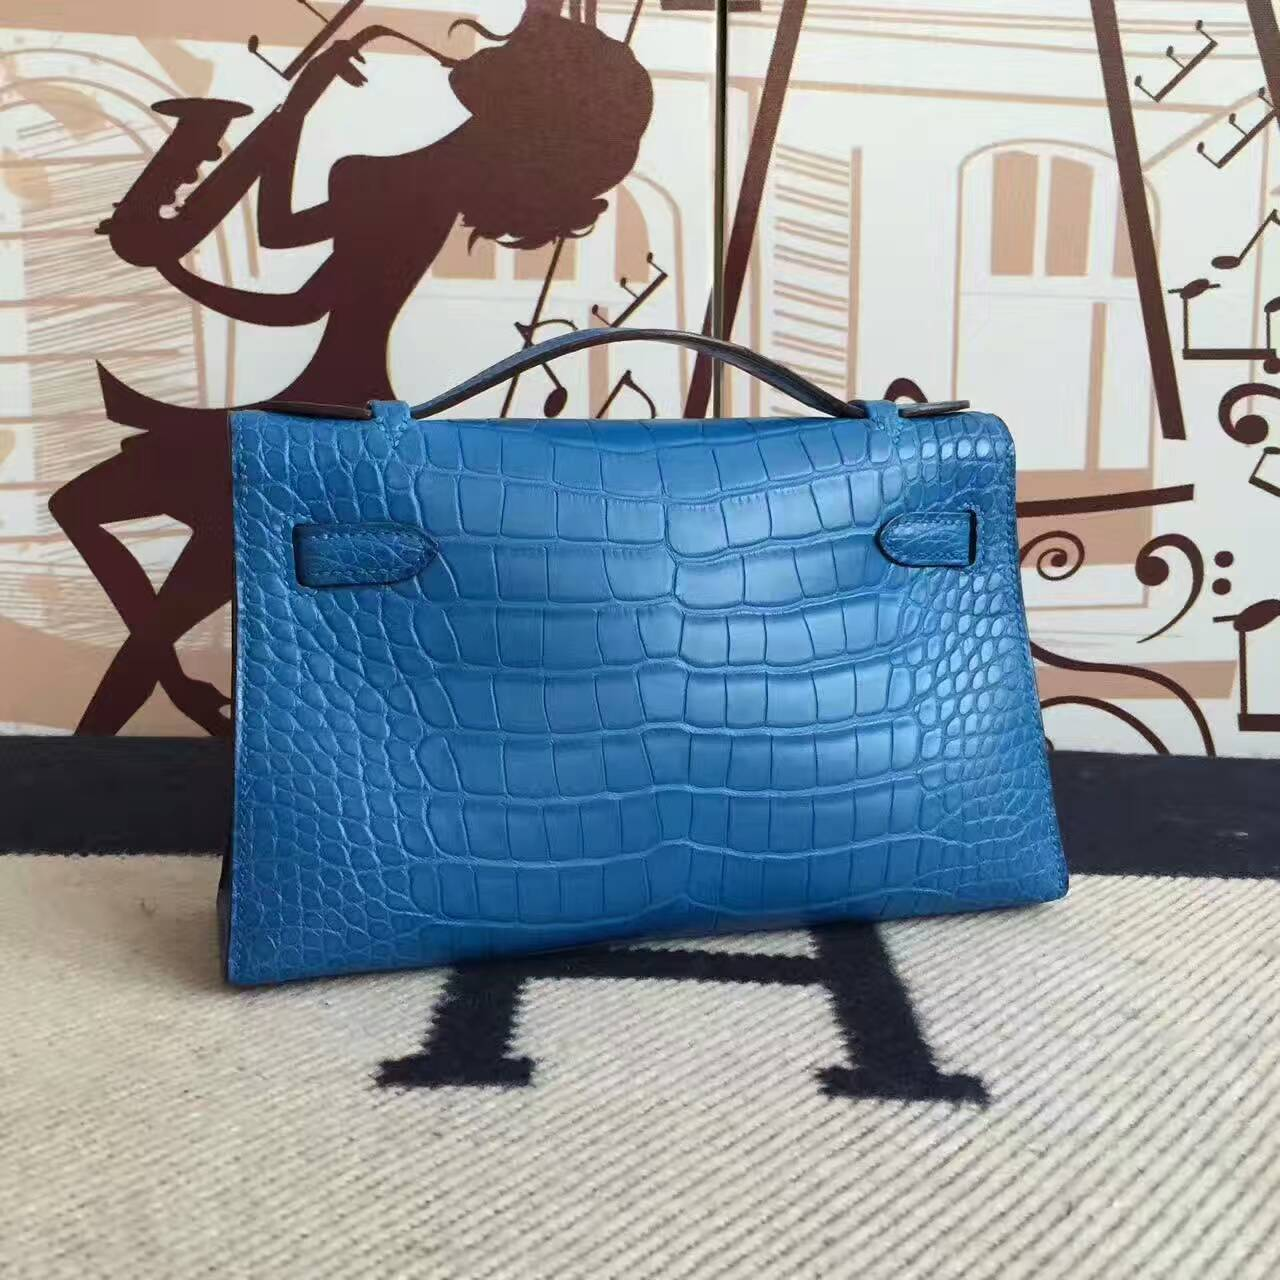 Wholesale Hermes 7Q Mykonos Blue Alligator Matt Minikelly Clutch Bag 22cm